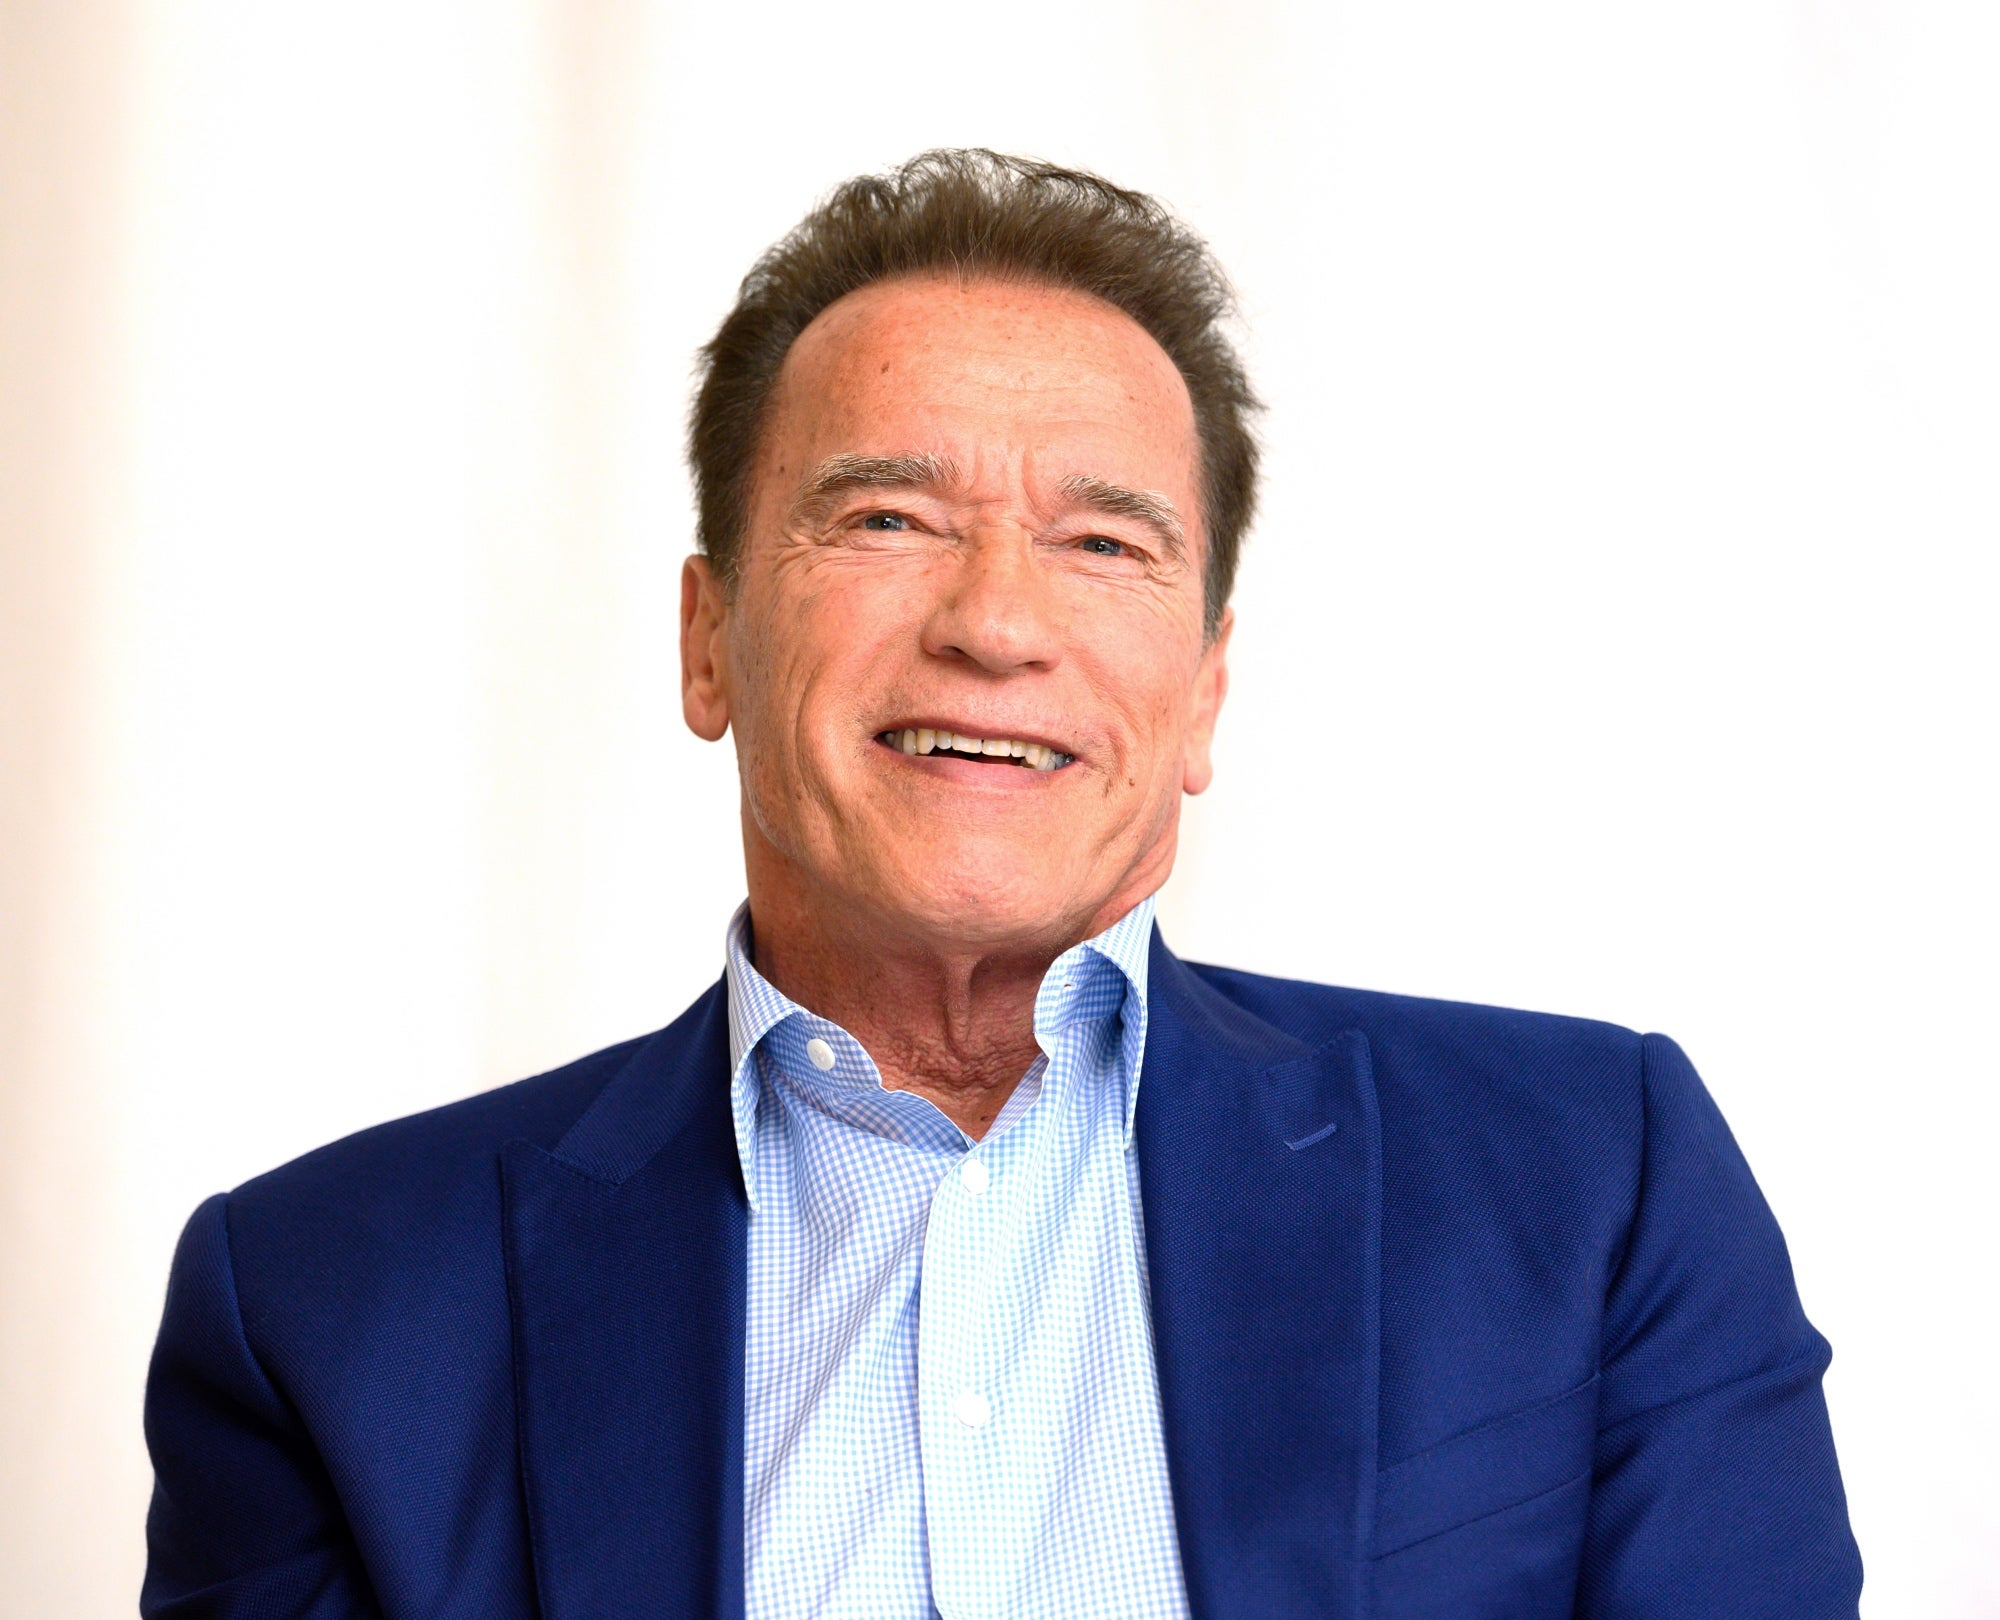 Actor and producer Arnold Schwarzenegger, Golden Globe winner